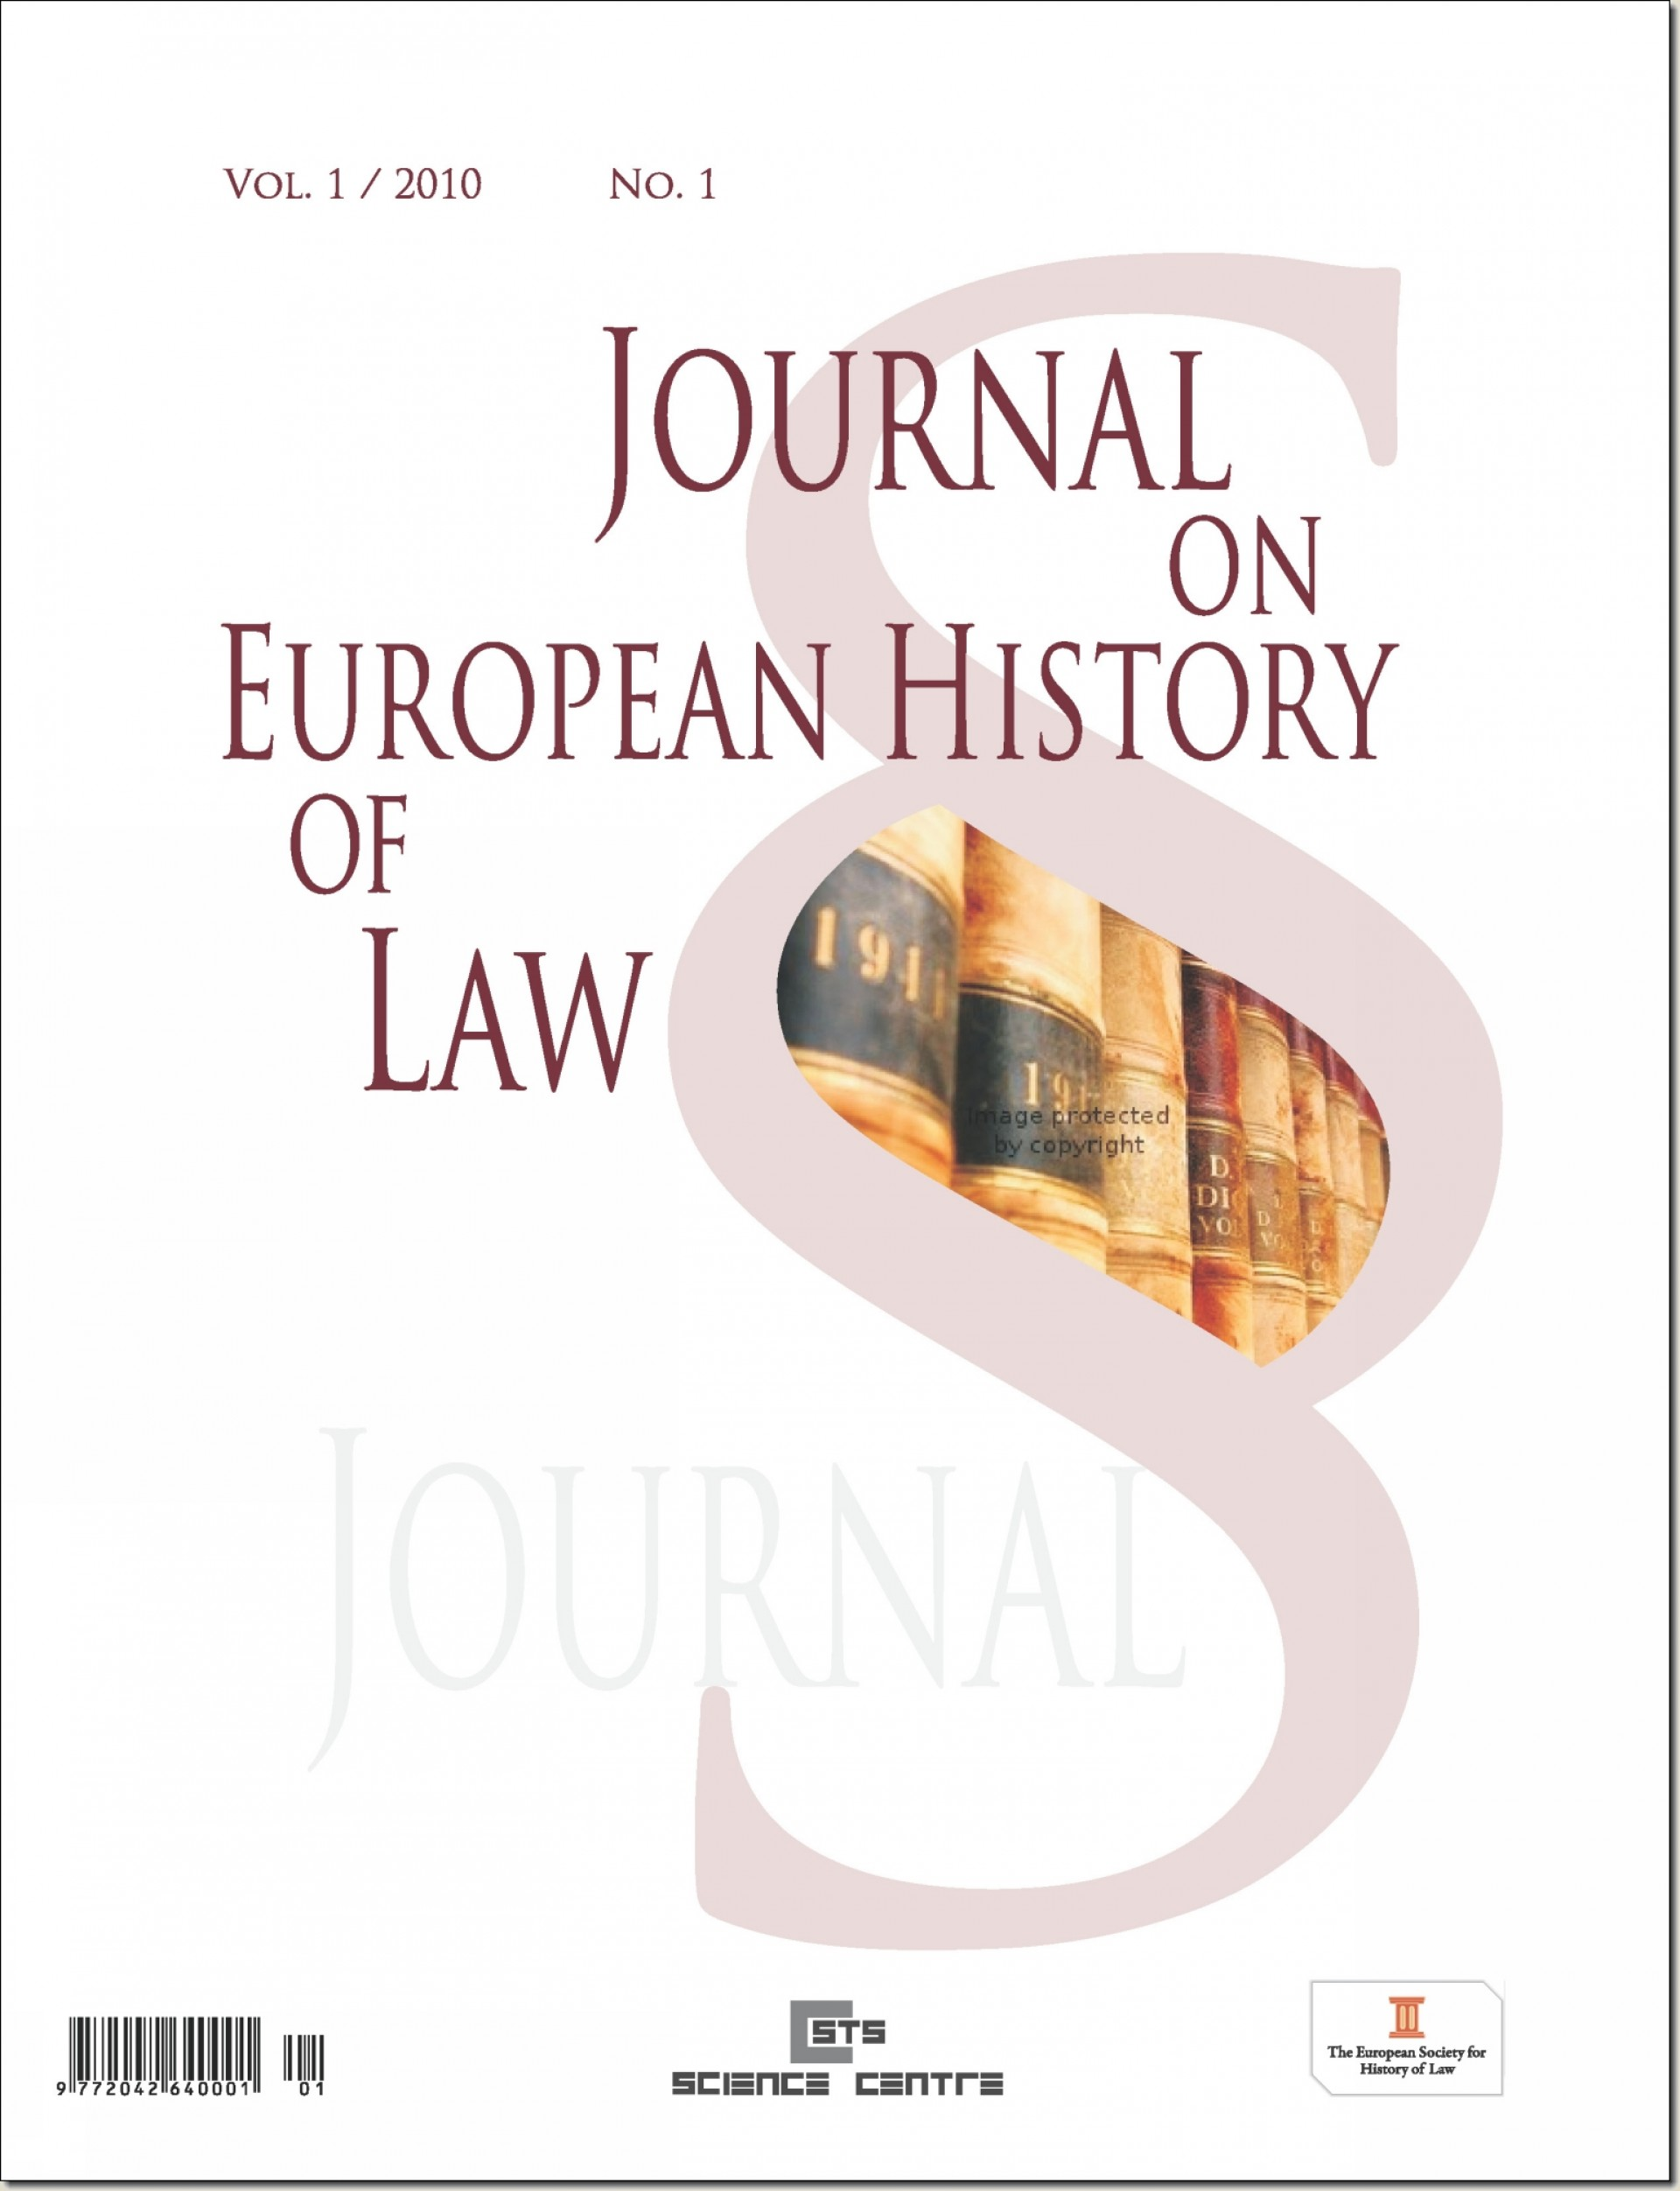 014 Research Paper 20th Century European History Topics Journal On Of Law Cover 1 Magnificent 1920